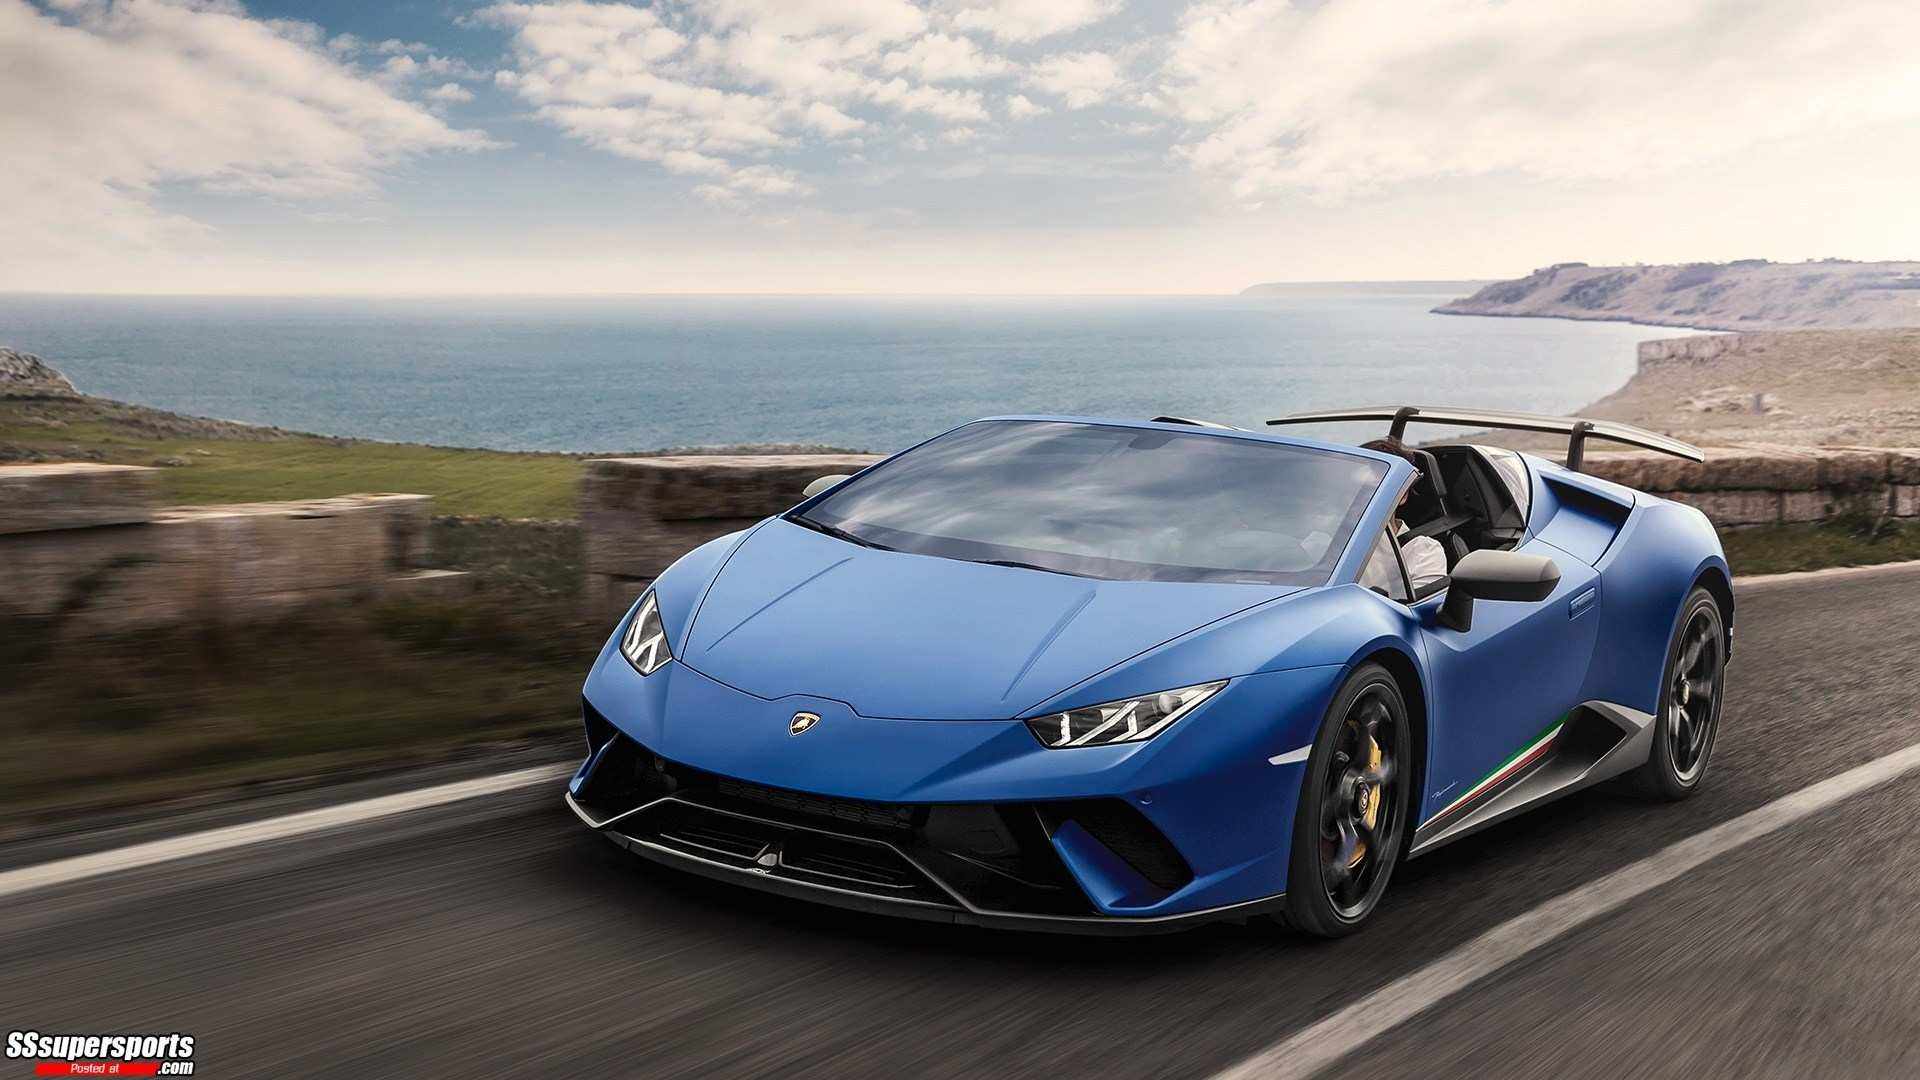 31 New 2019 Lamborghini Spyder Spesification with 2019 Lamborghini Spyder